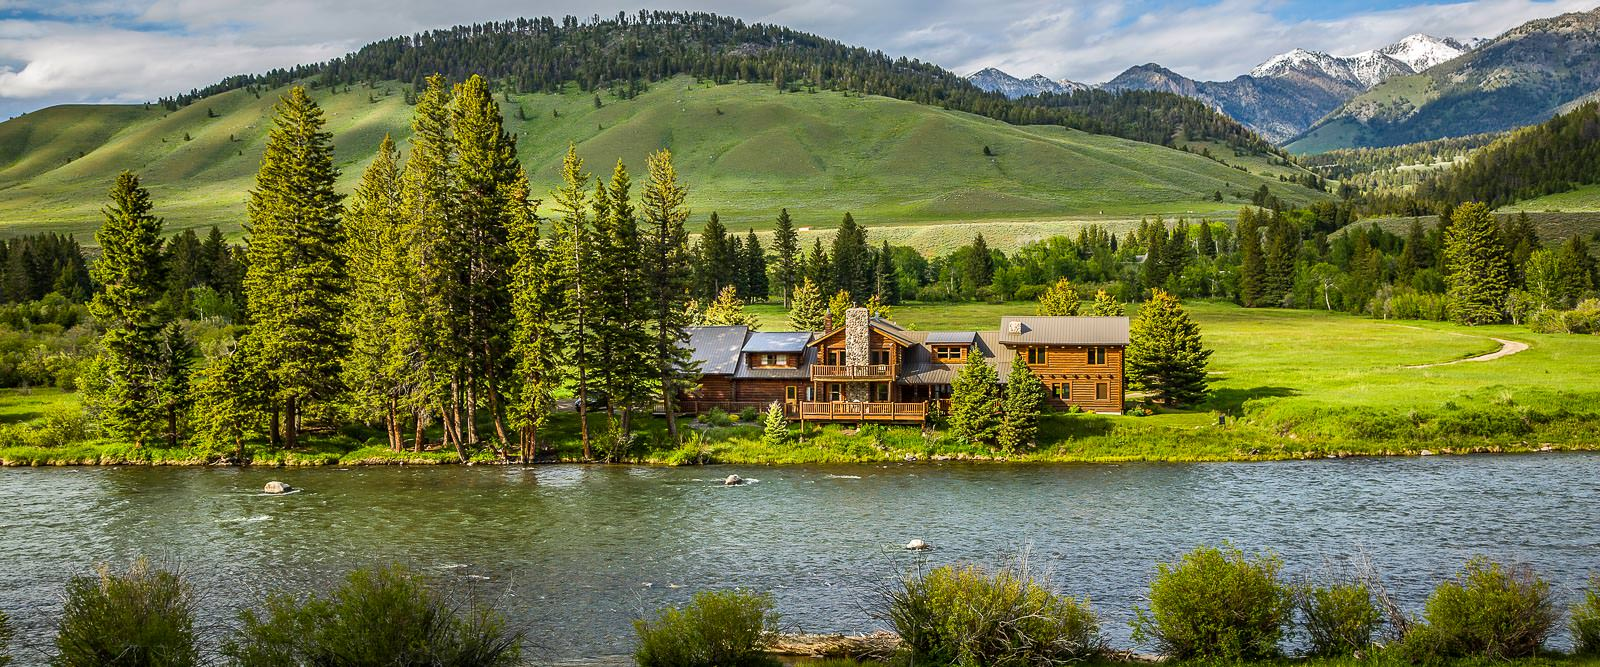 montana fly fishing trips world class lodges expert guides